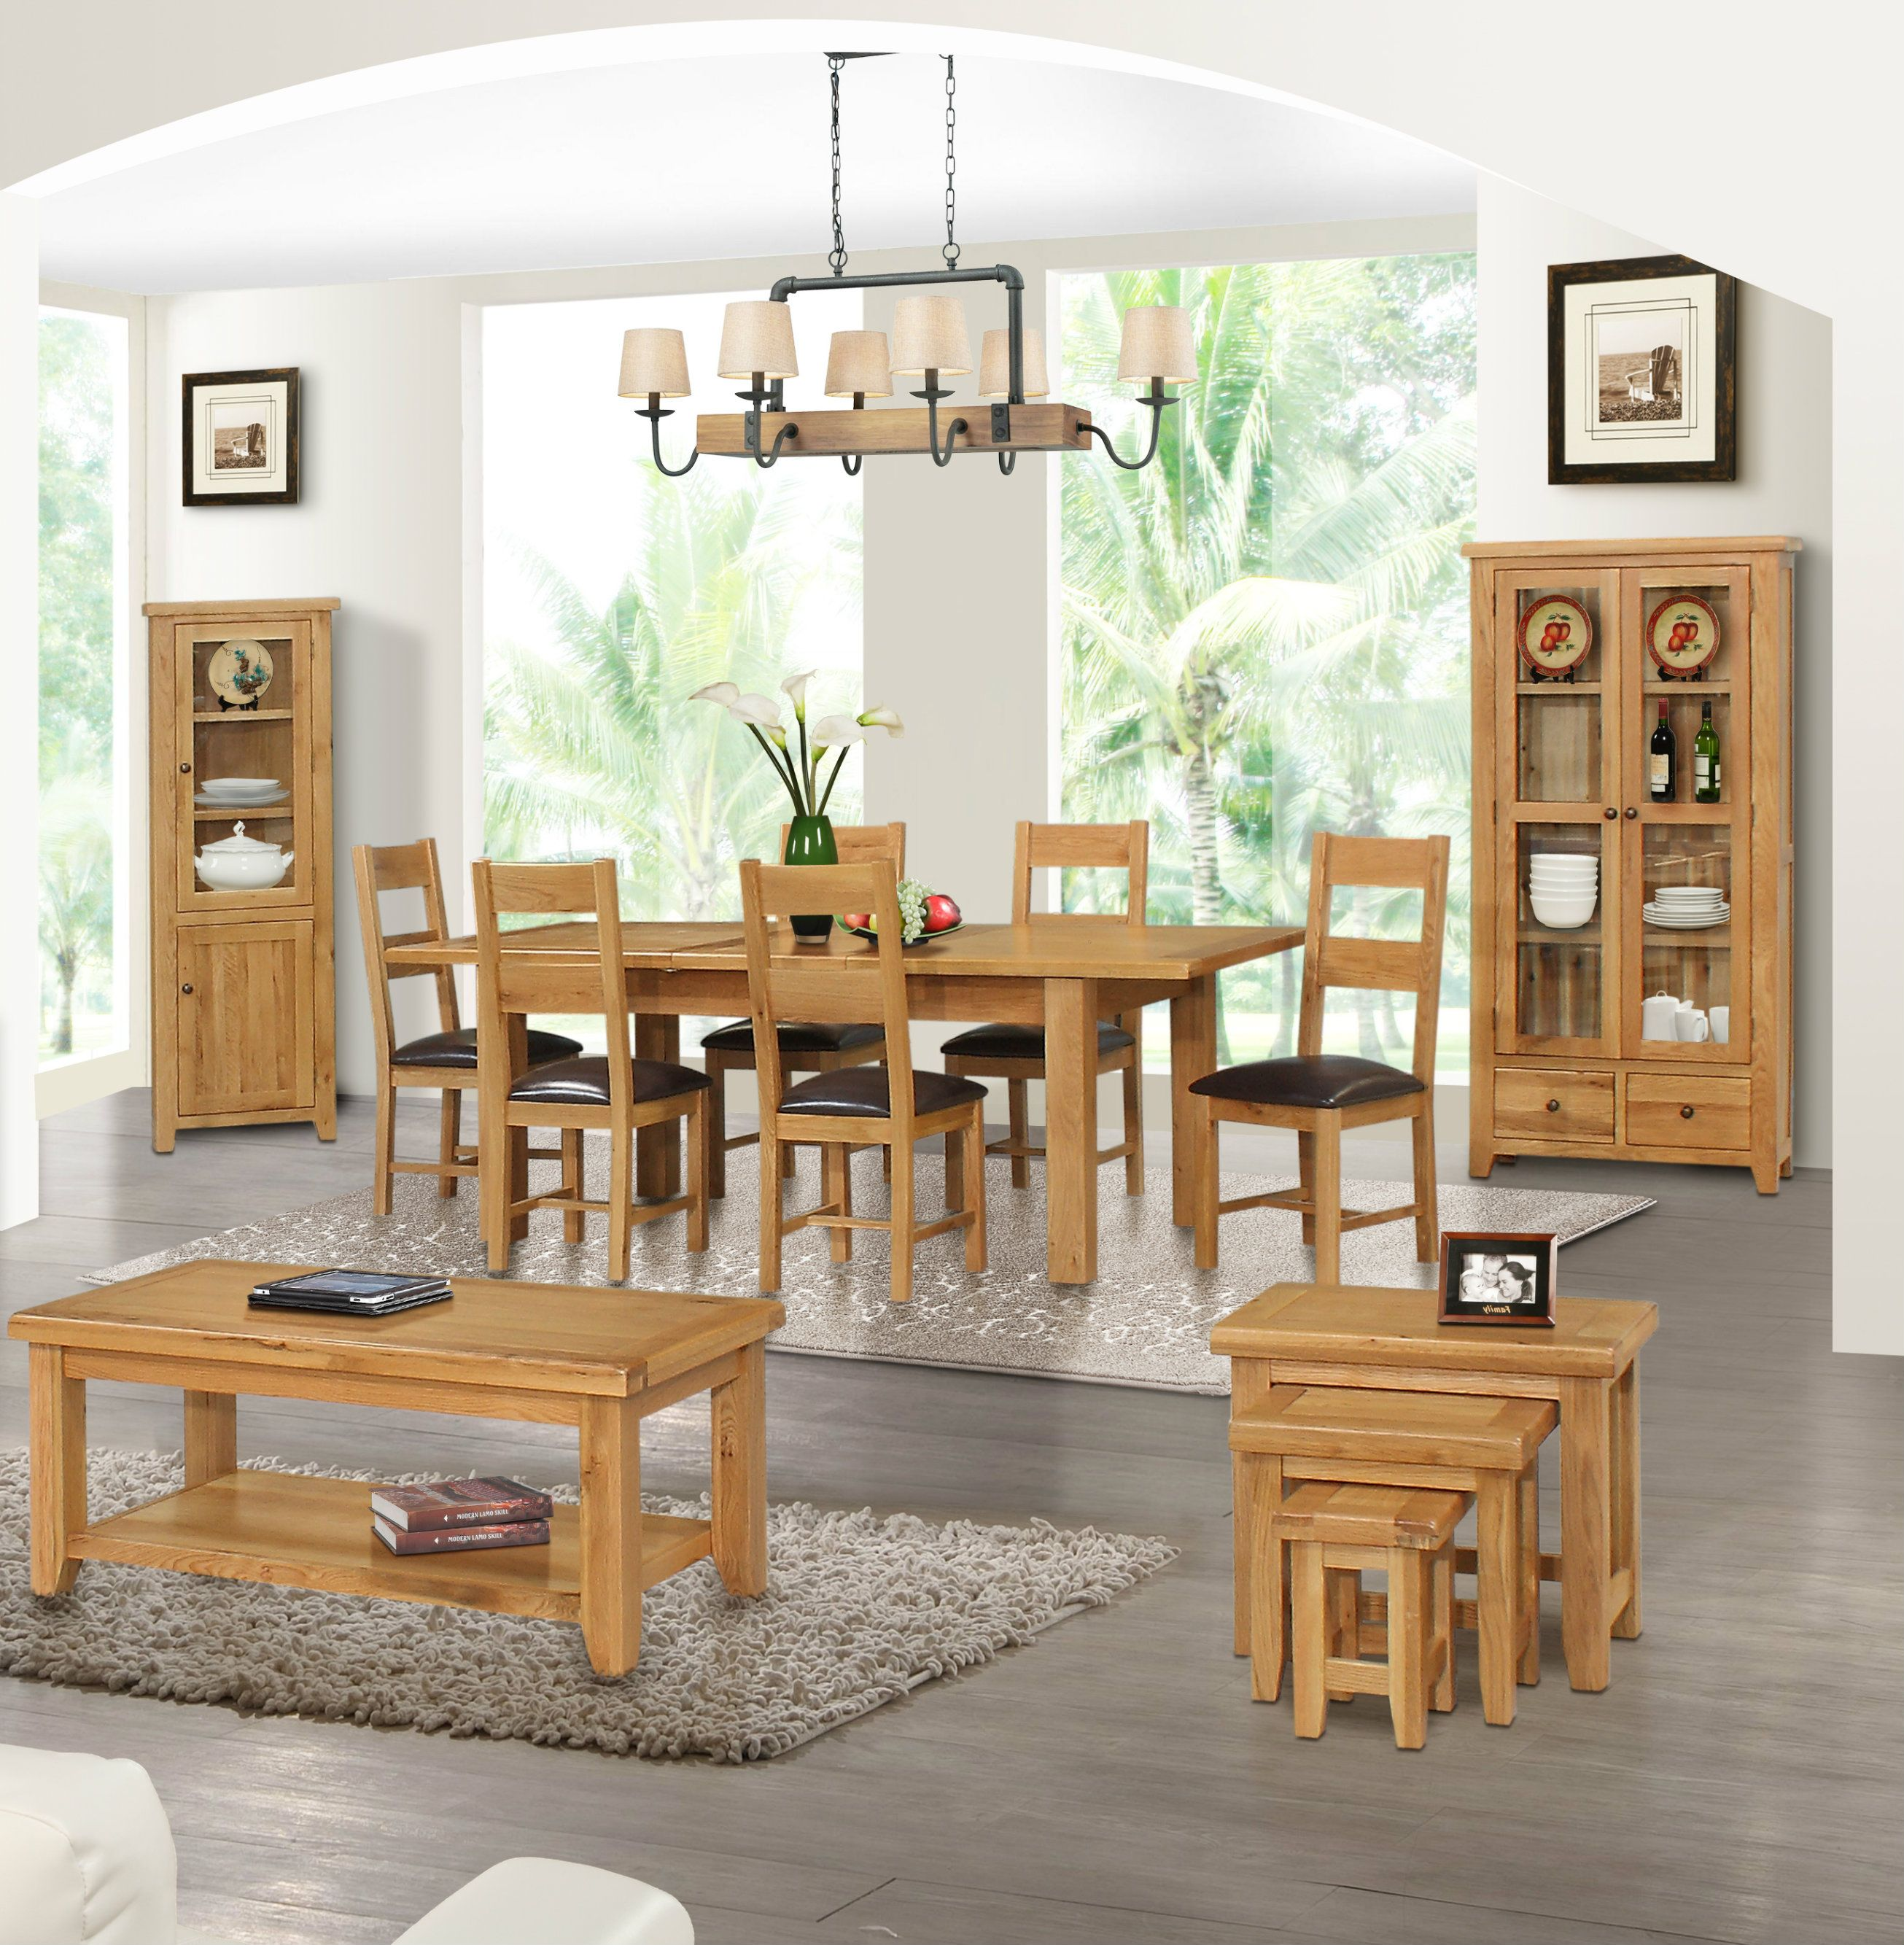 Otago Oak Coffee Table, Nest Of Tables, Display Cabinet And Dining Room  Table U0026